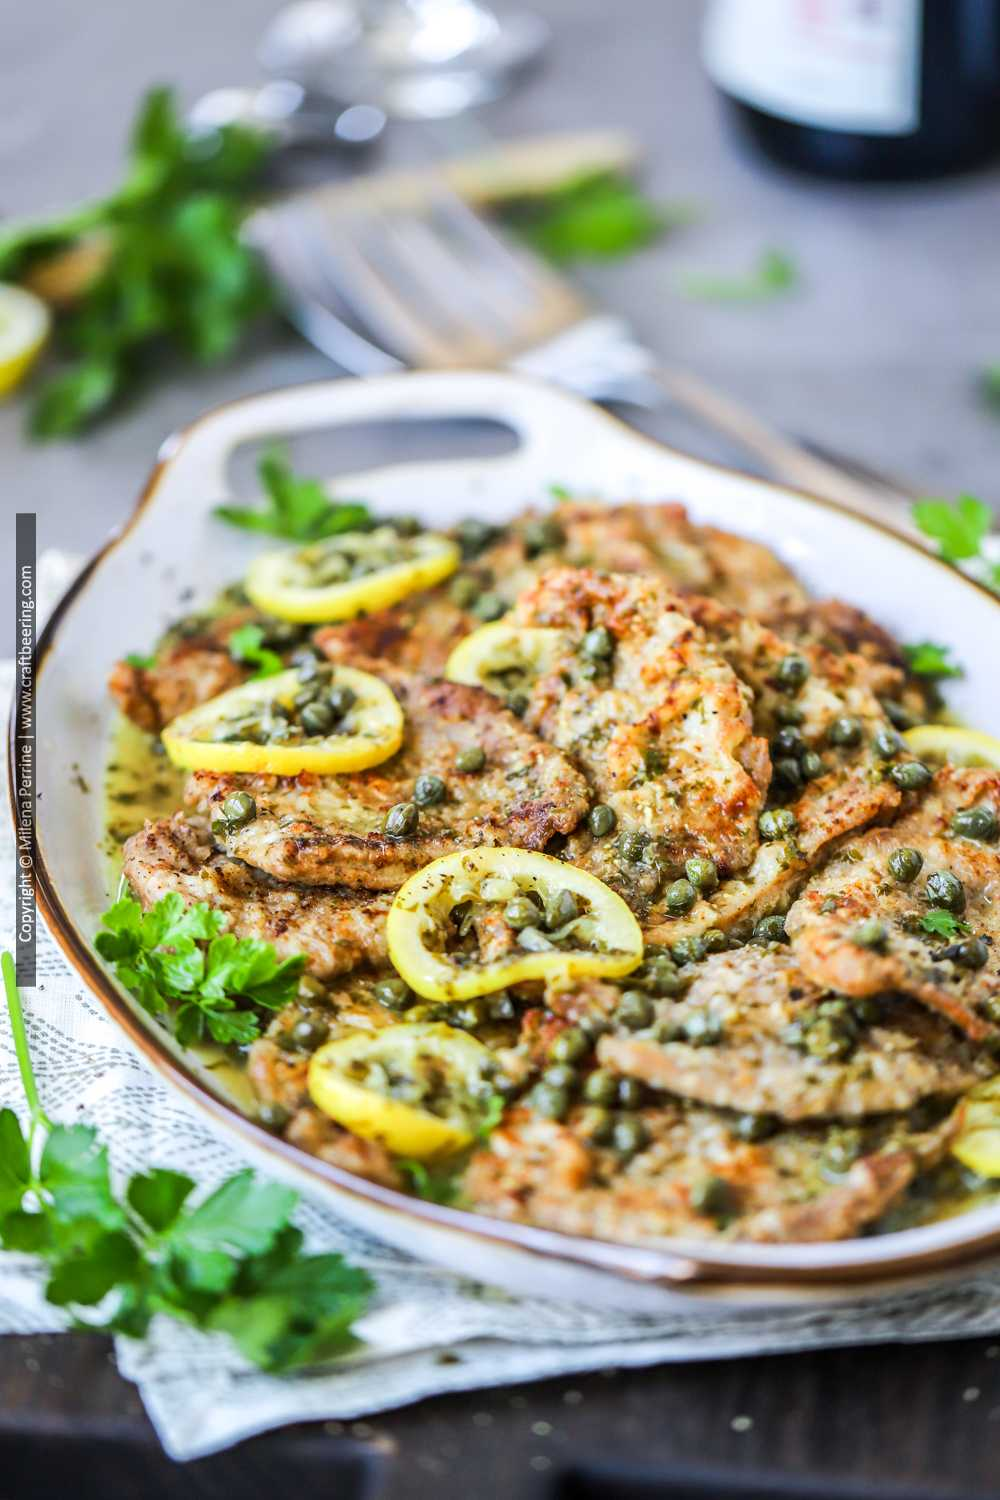 Scallopini of veal piccata served on a platter.